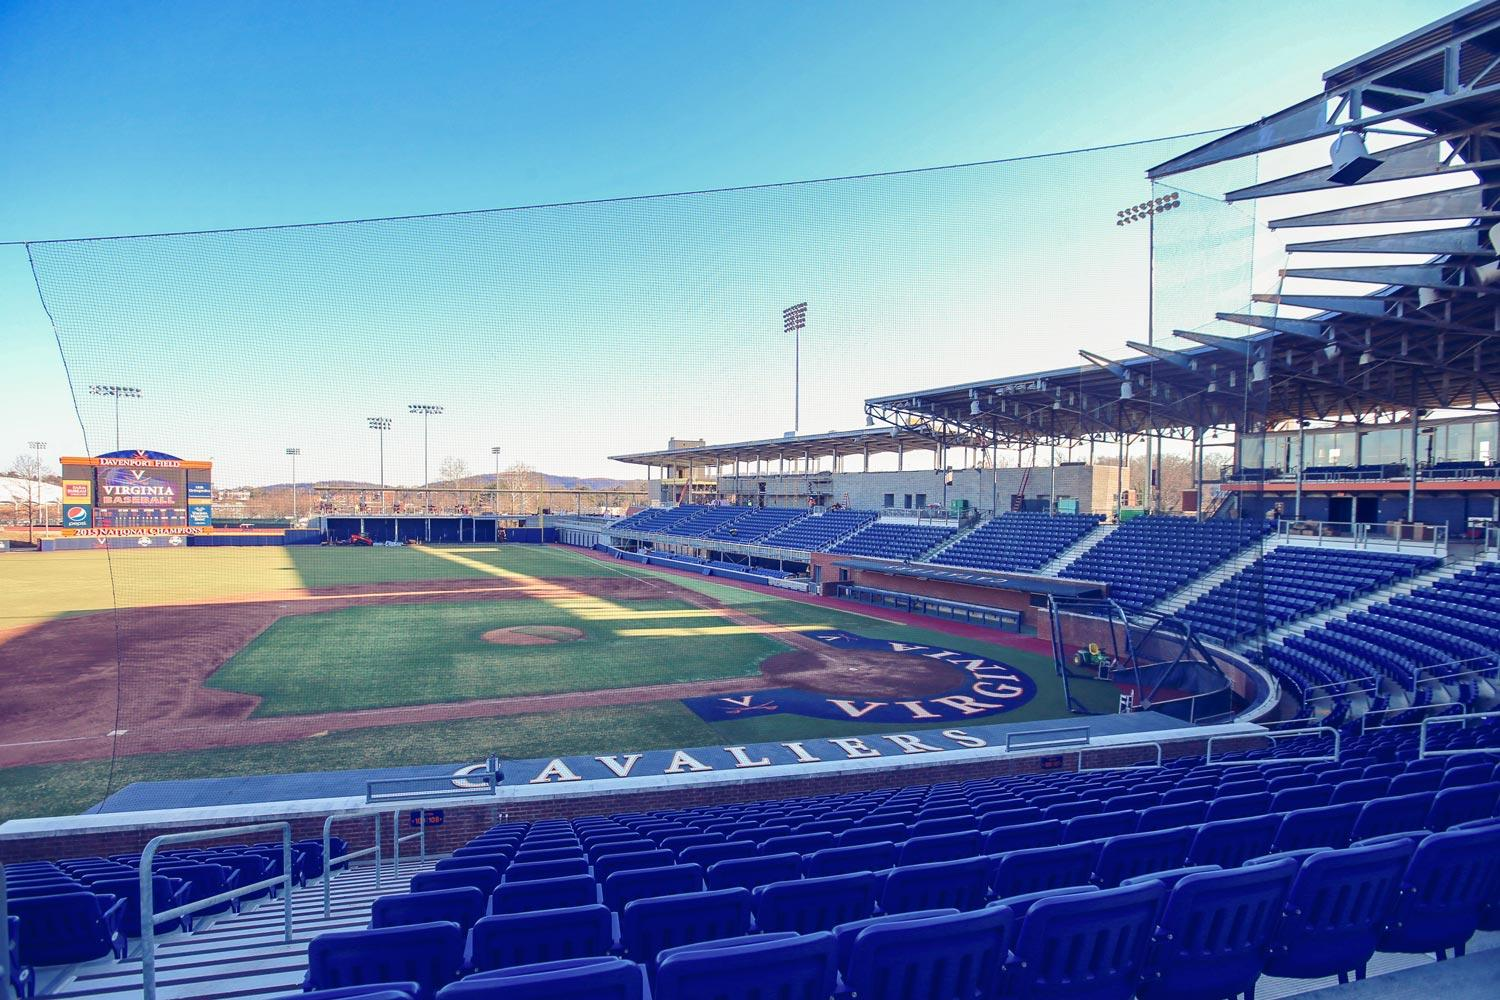 Fans at the Cavaliers' Feb. 20 home opener will see a transformed stadium – particularly in areas along the right-field line.